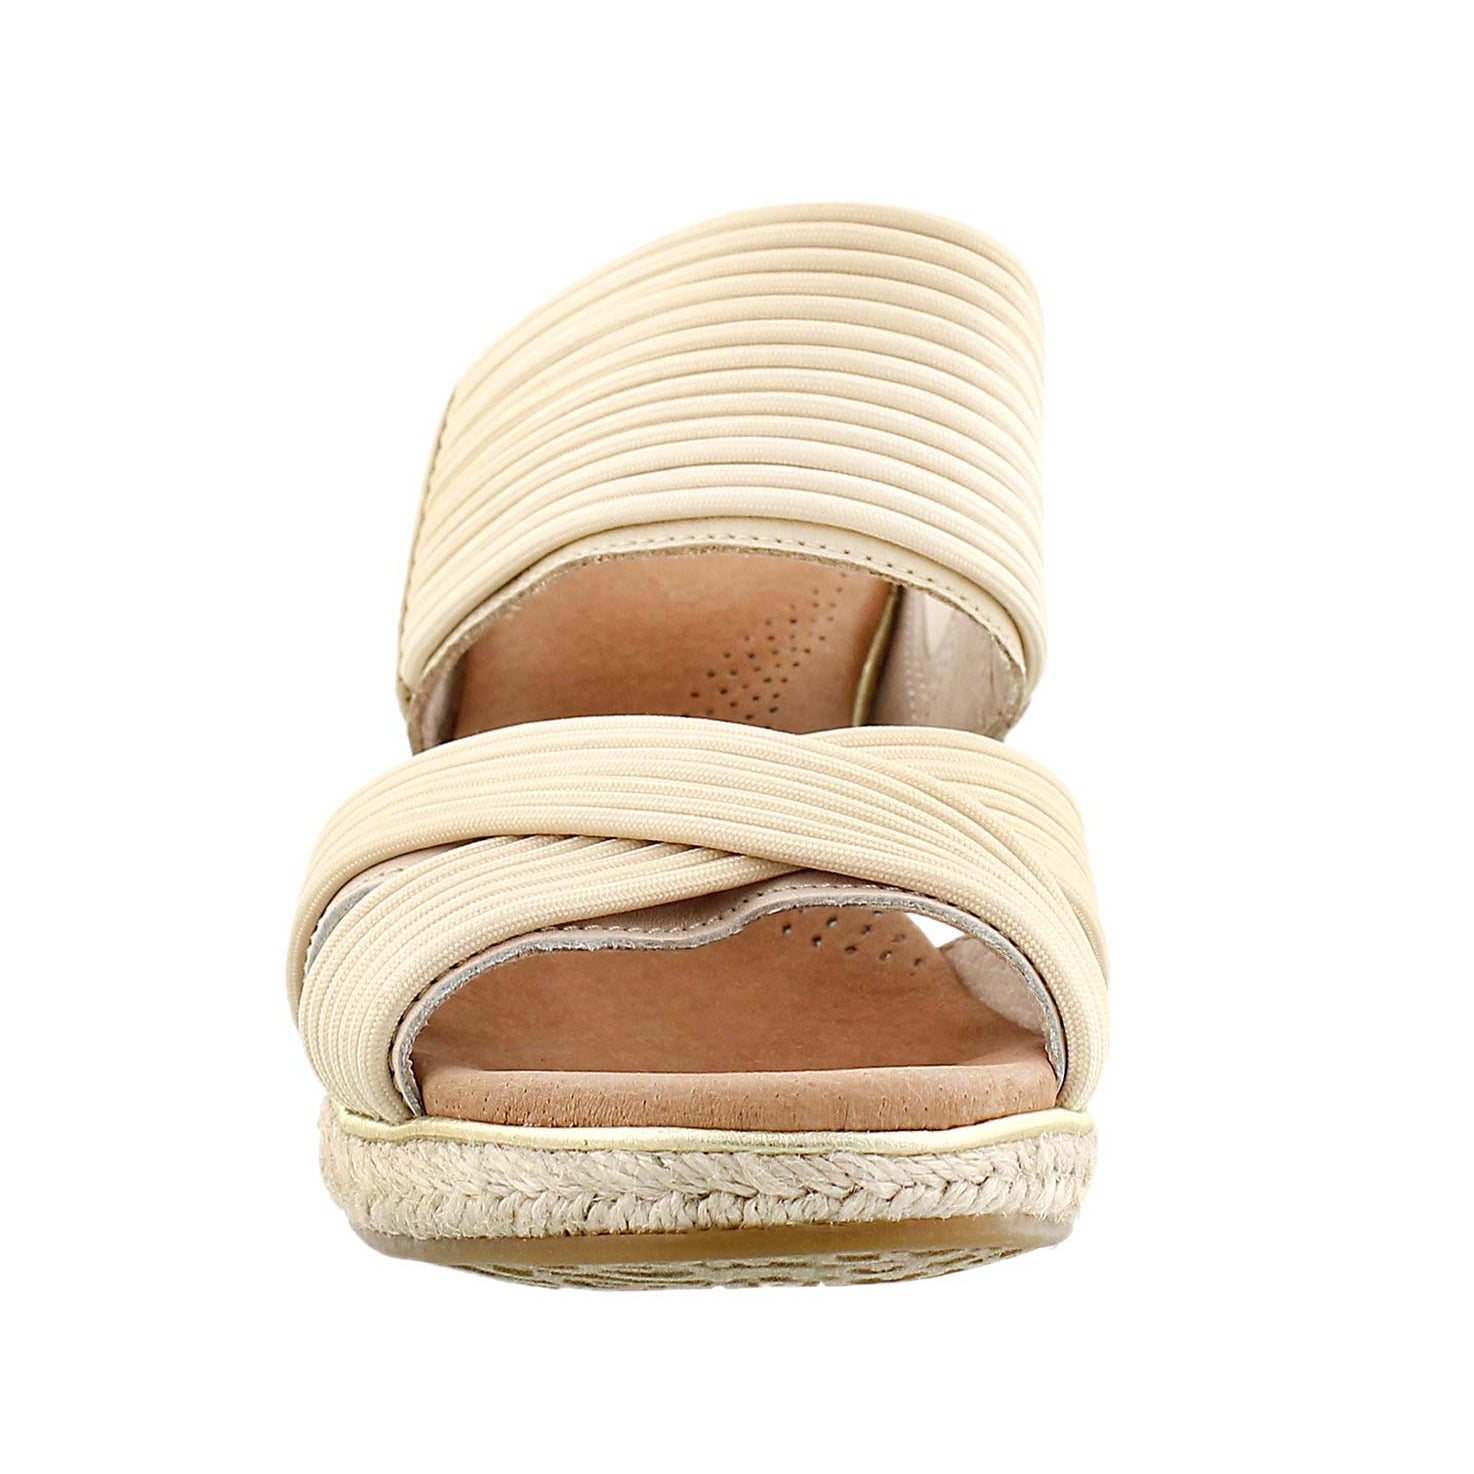 Lds Hilarie buff wedge slide sandal